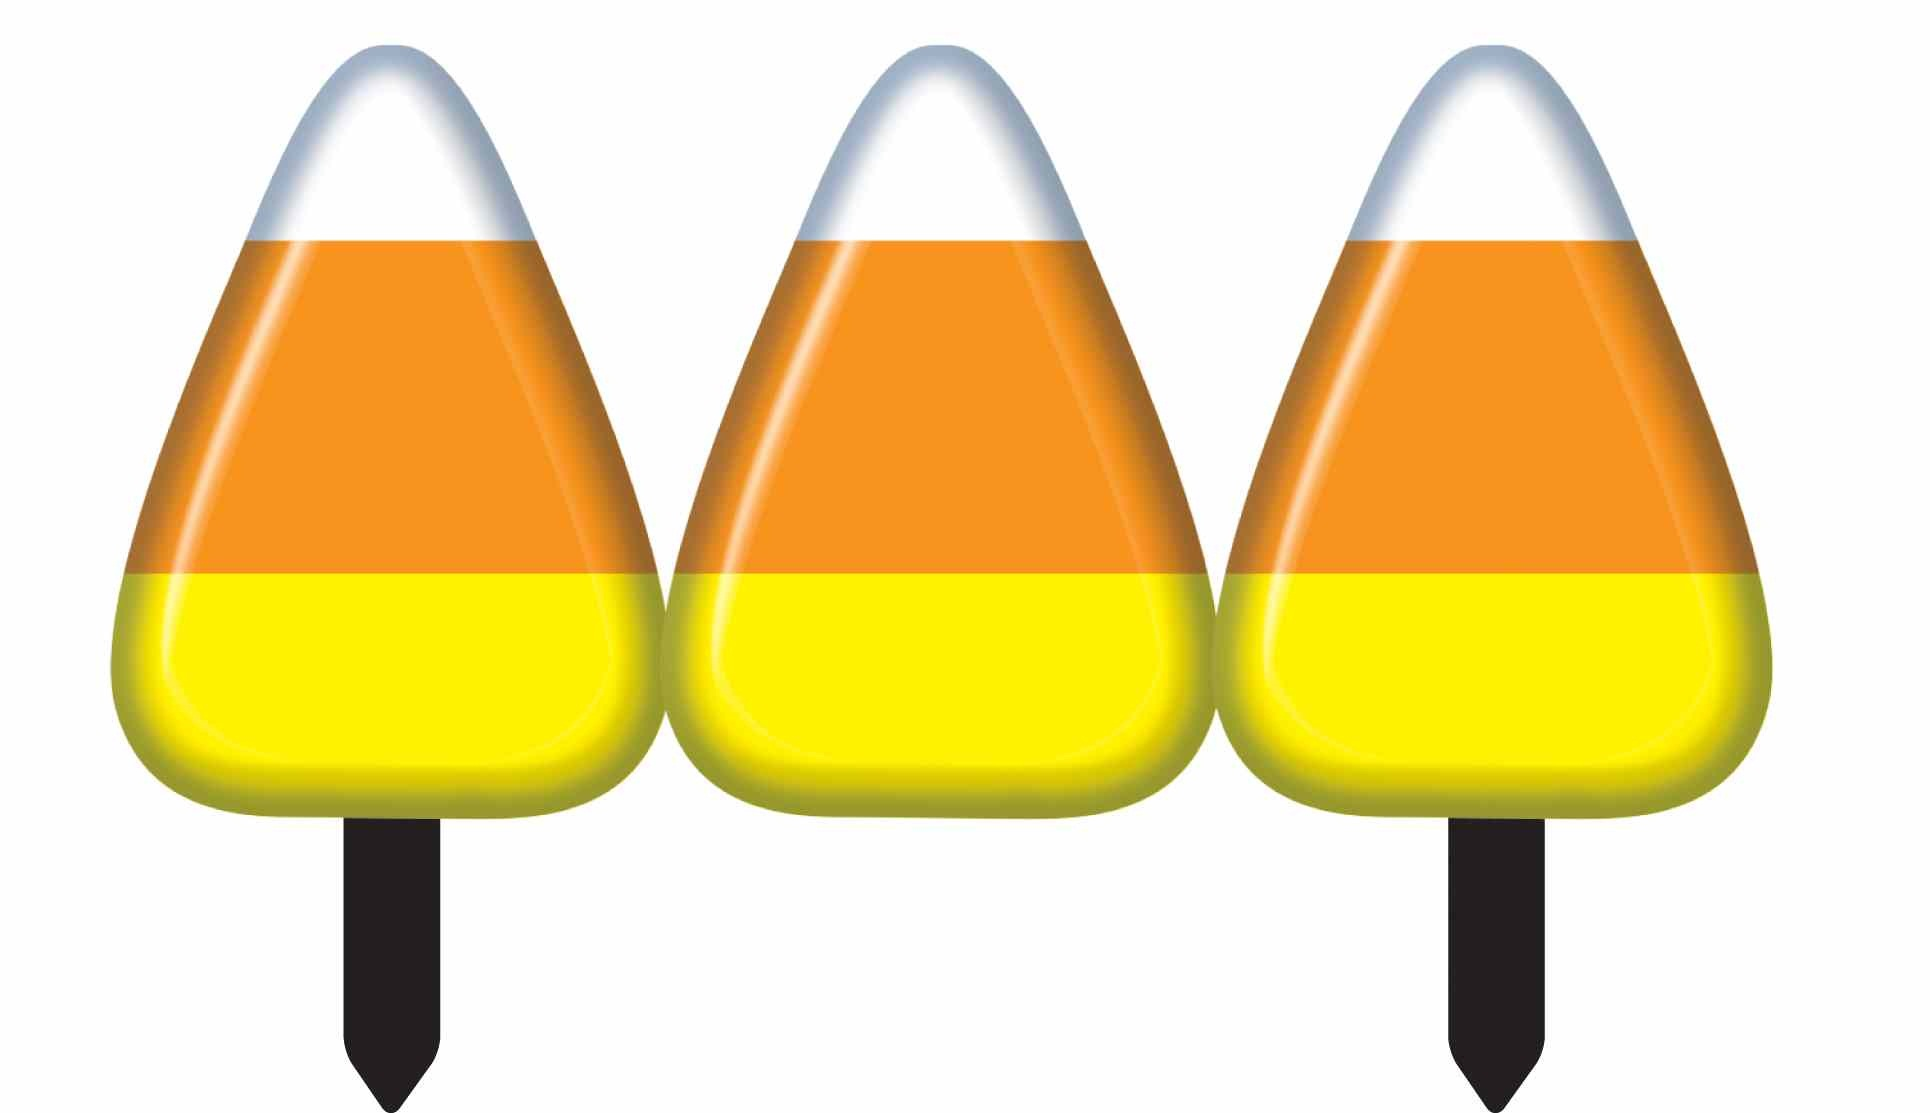 1930x1113 Halloween Candy Corn Clipart Free Images 2 Clipartbarn